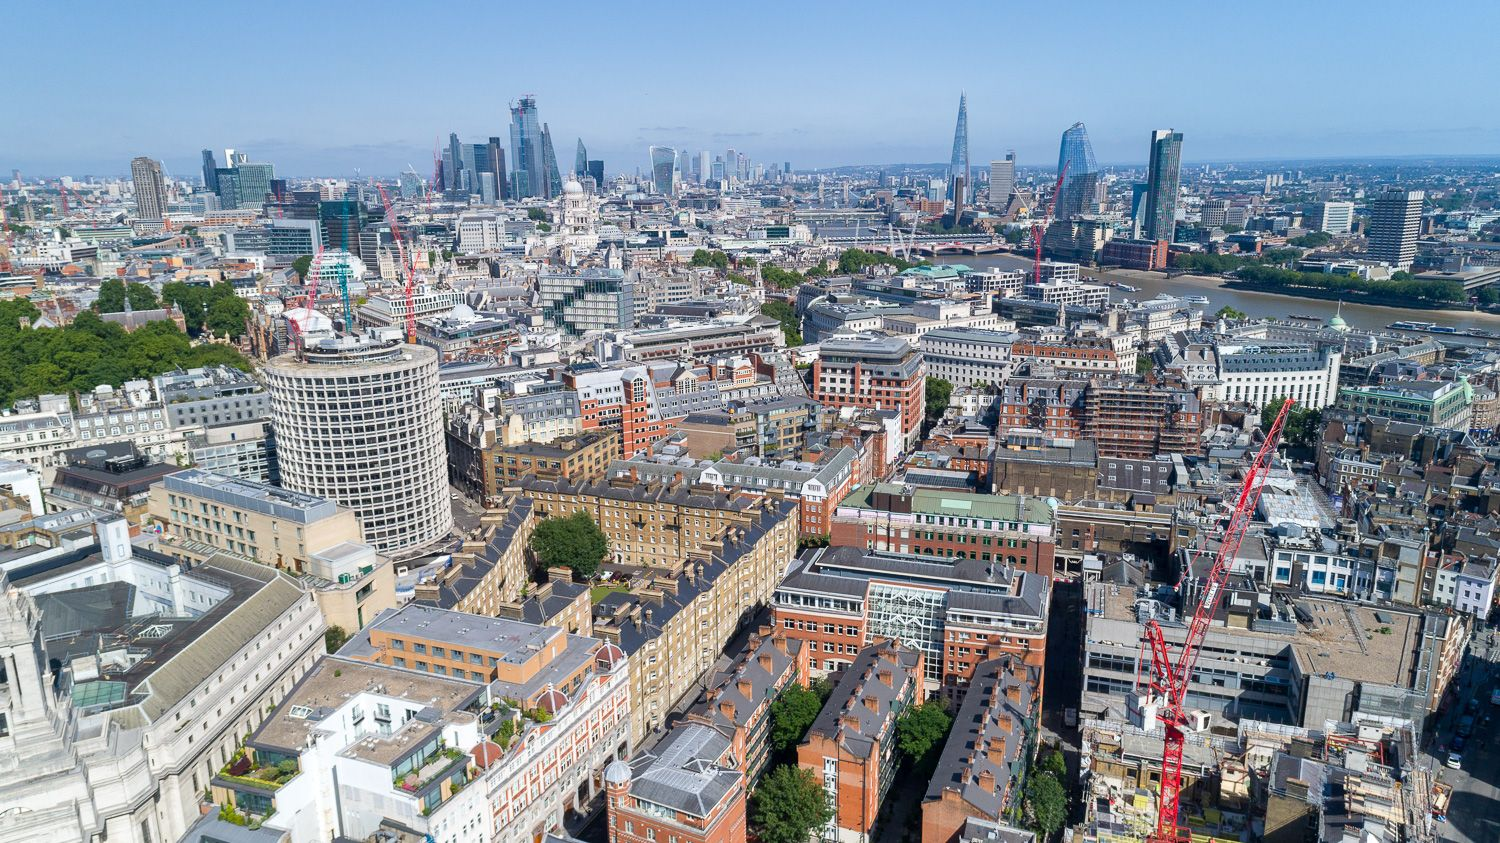 London skyline from drone